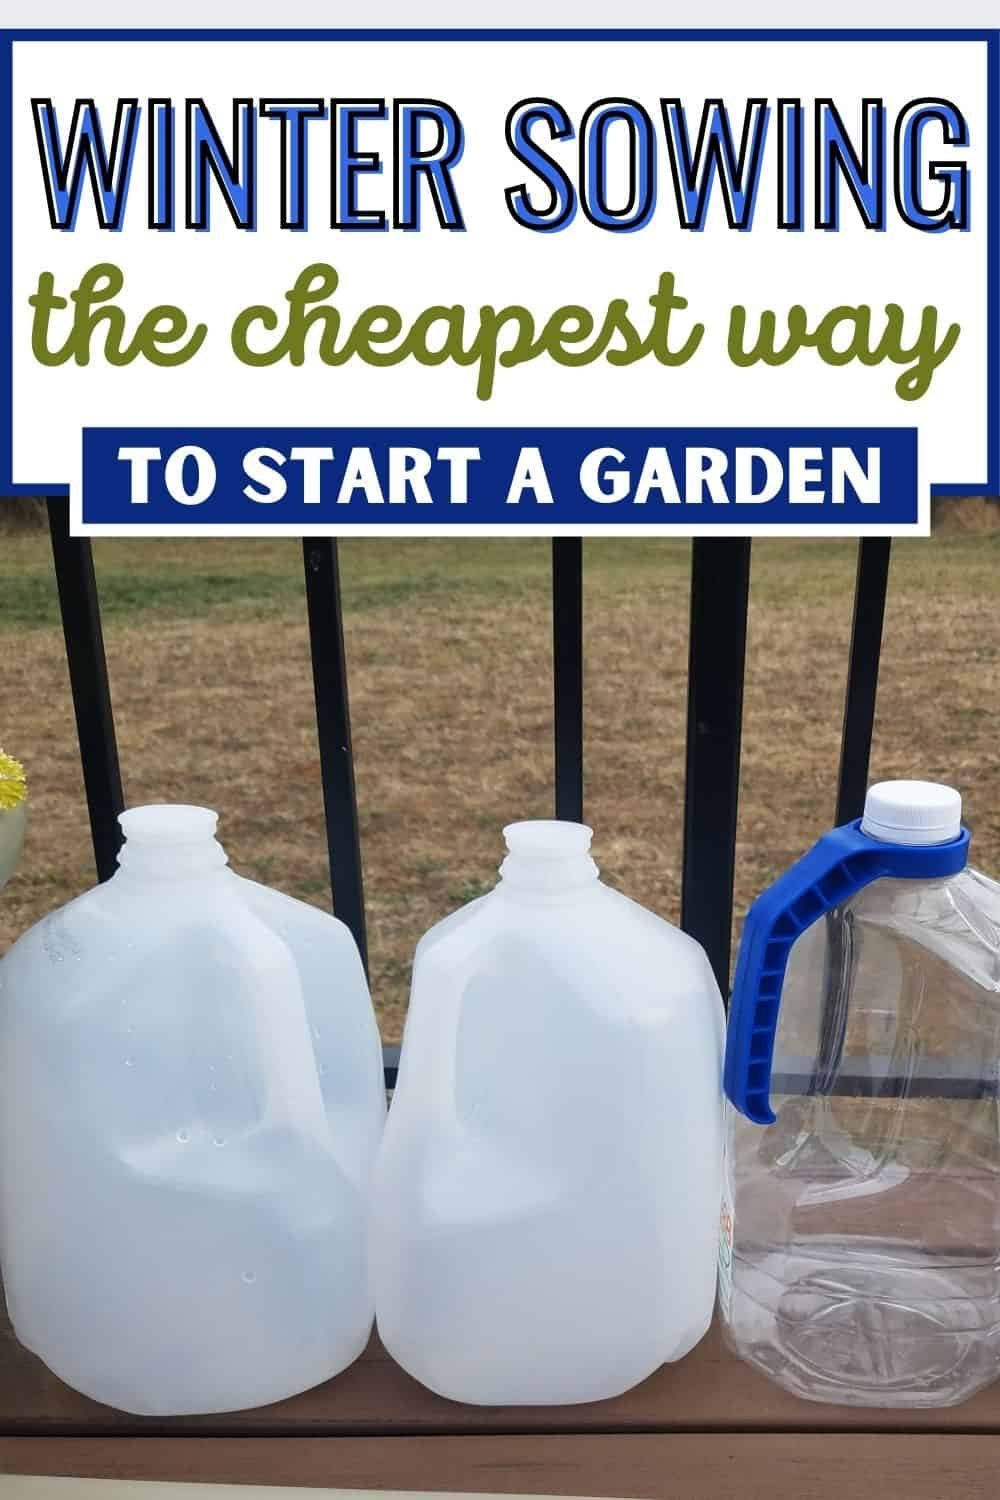 Winter sowing - the cheapest way to start a garden